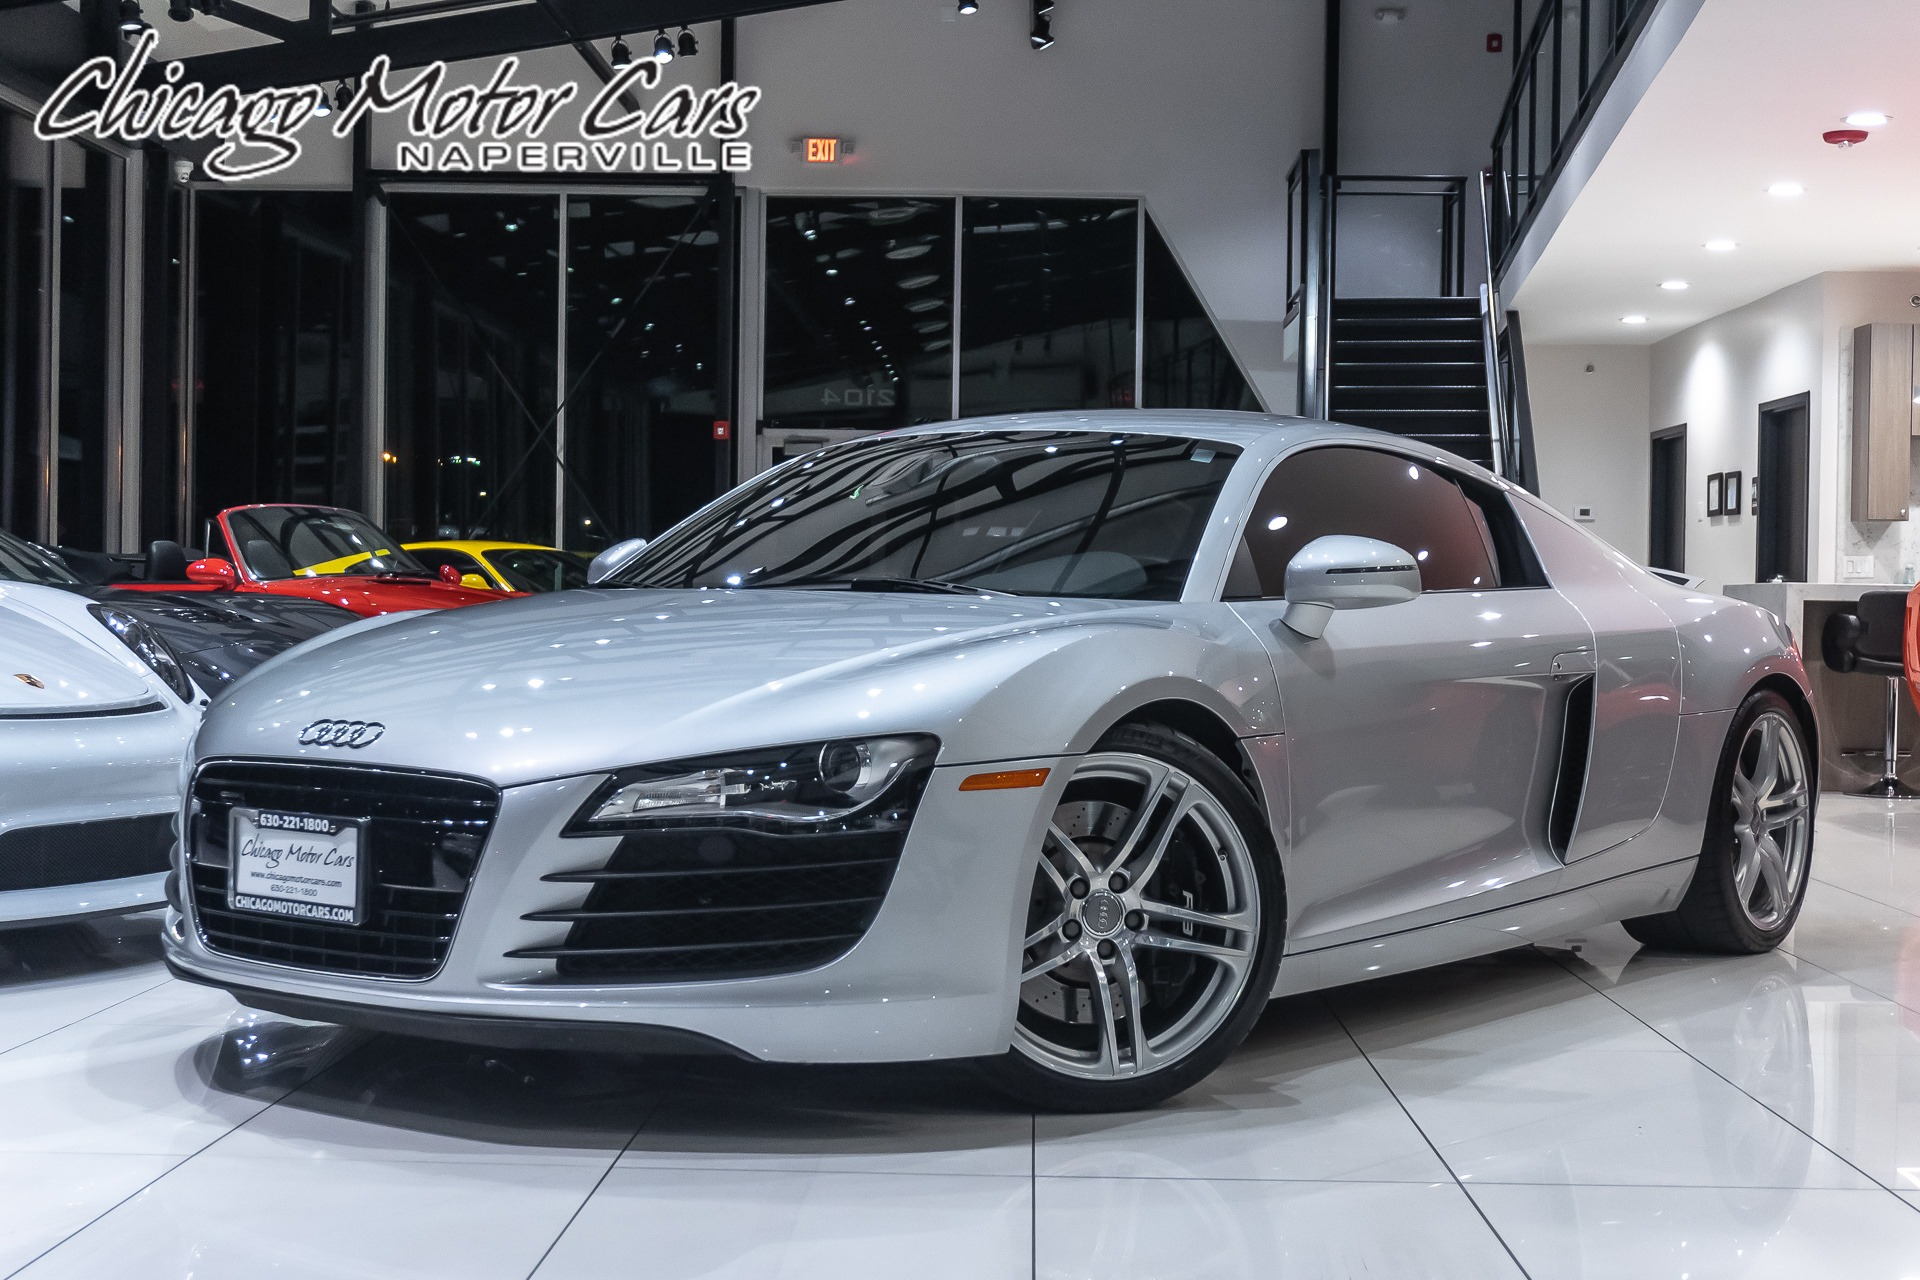 Used 2009 Audi R8 4 2 V8 Quattro Coupe Msrp 126k 6 Manual Guide